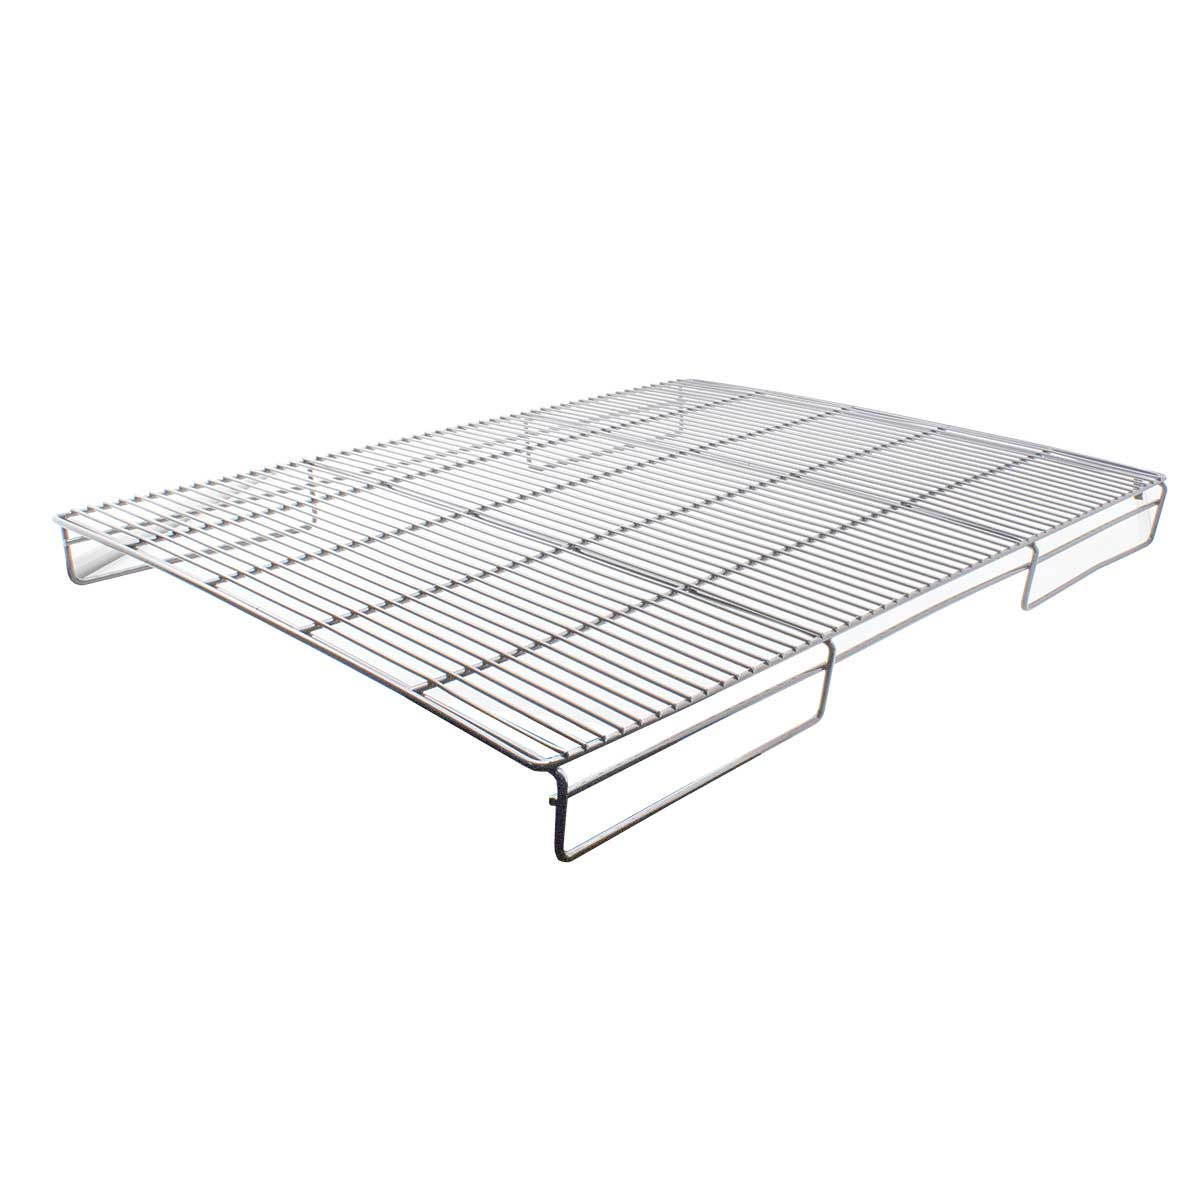 Floor Grate (Set Of 2) For Large Modular Cage